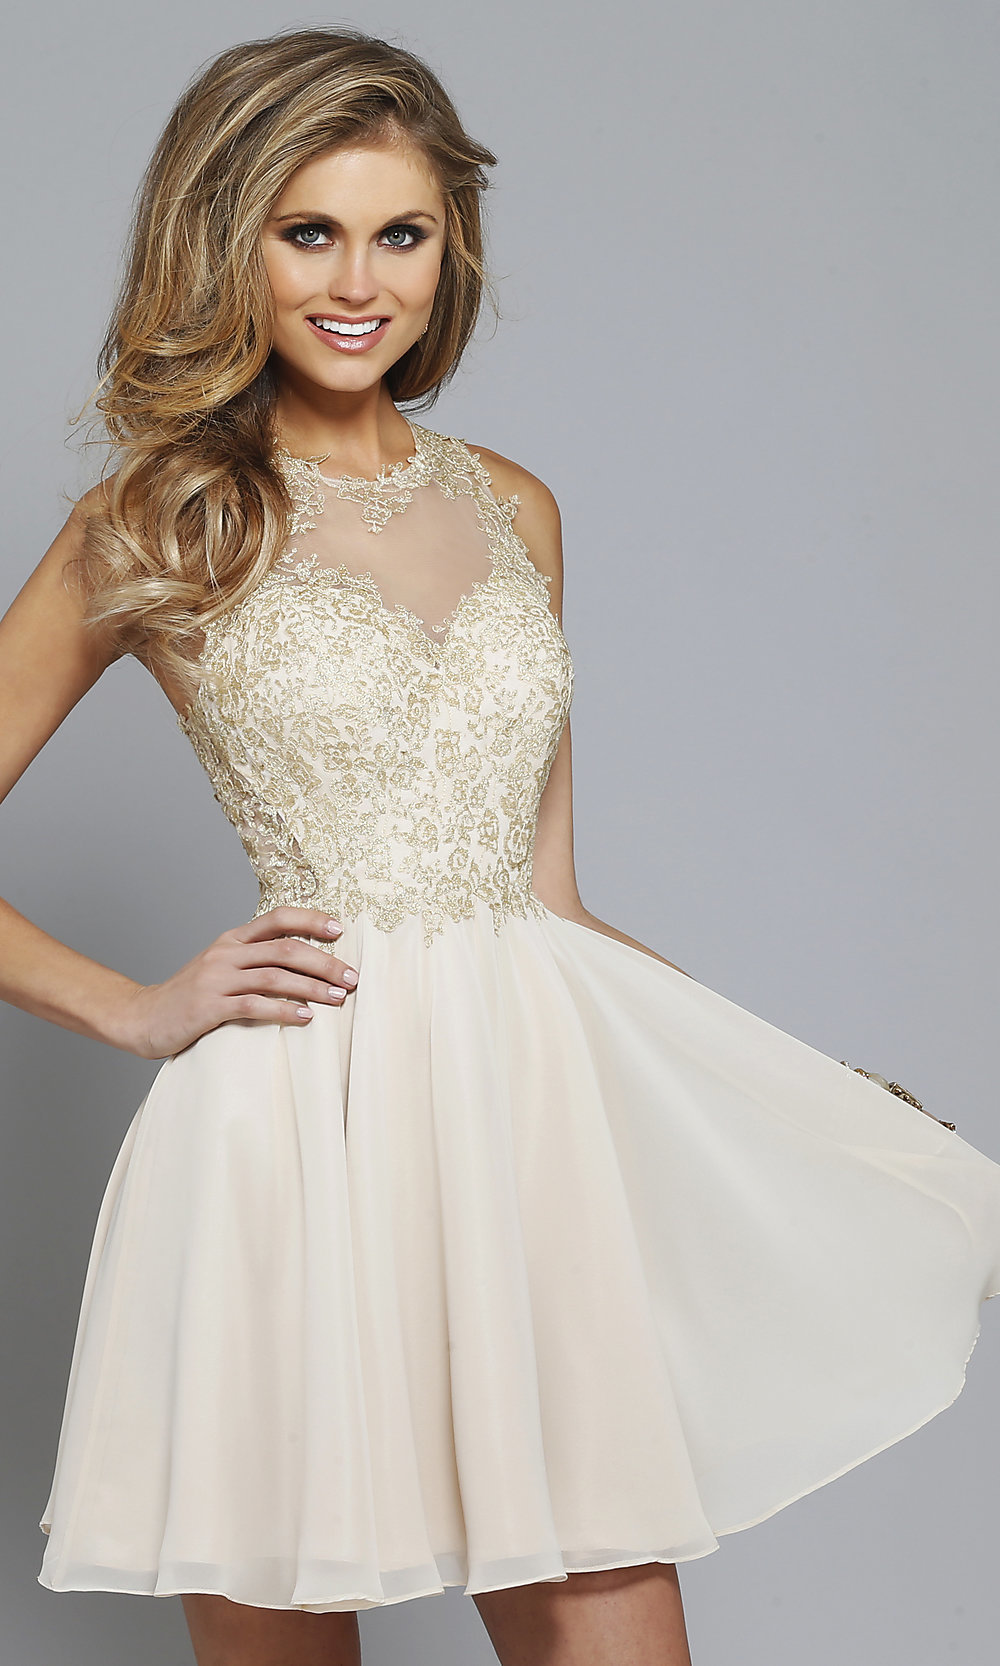 Where To Shop For Homecoming Dresses